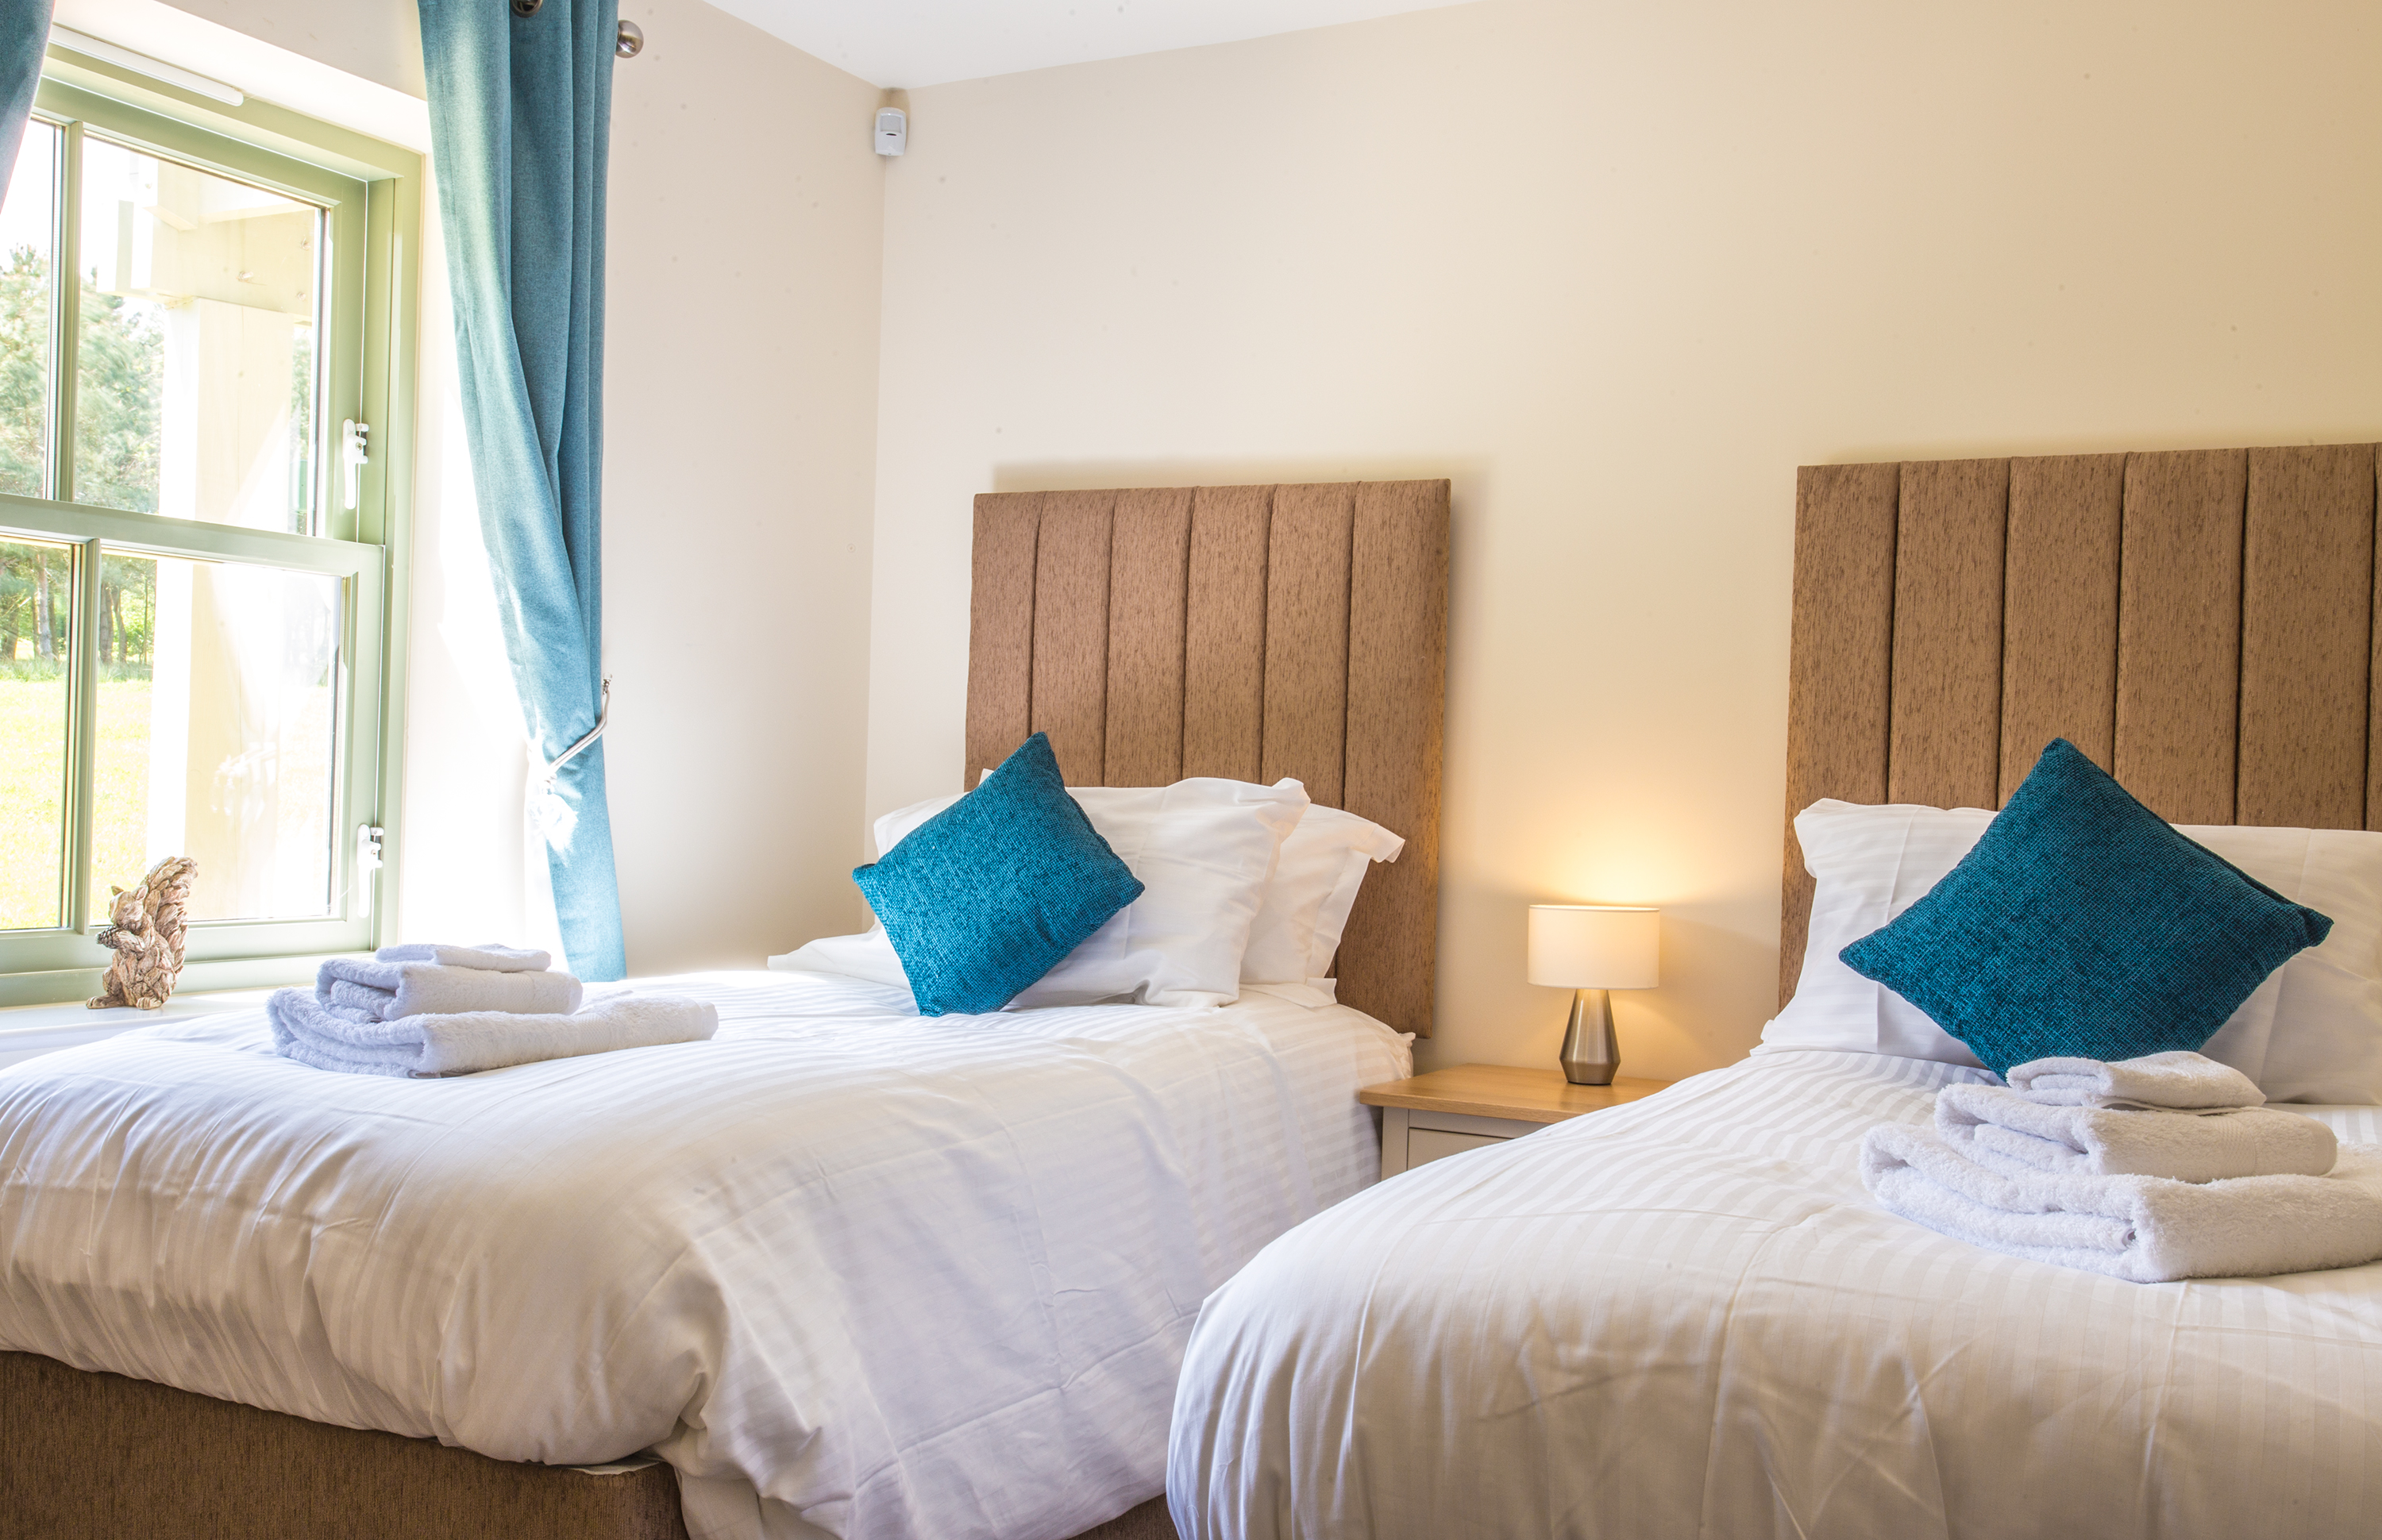 gorgeous cottages in Alnwick no pets allowed, holiday cottages for 6 people with 3 bathrooms